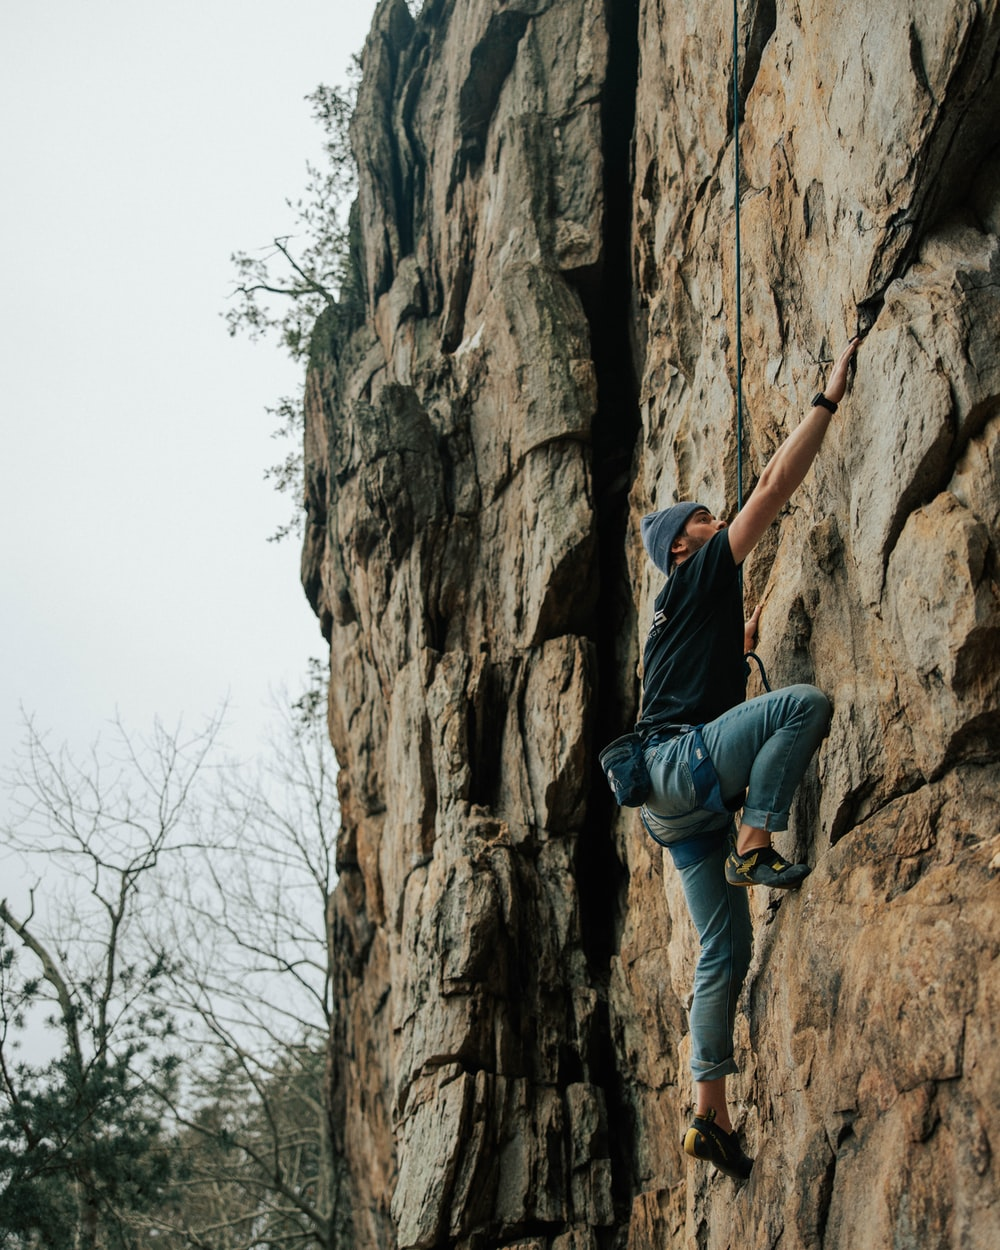 man in black t-shirt and blue denim jeans climbing on brown rock formation during daytime